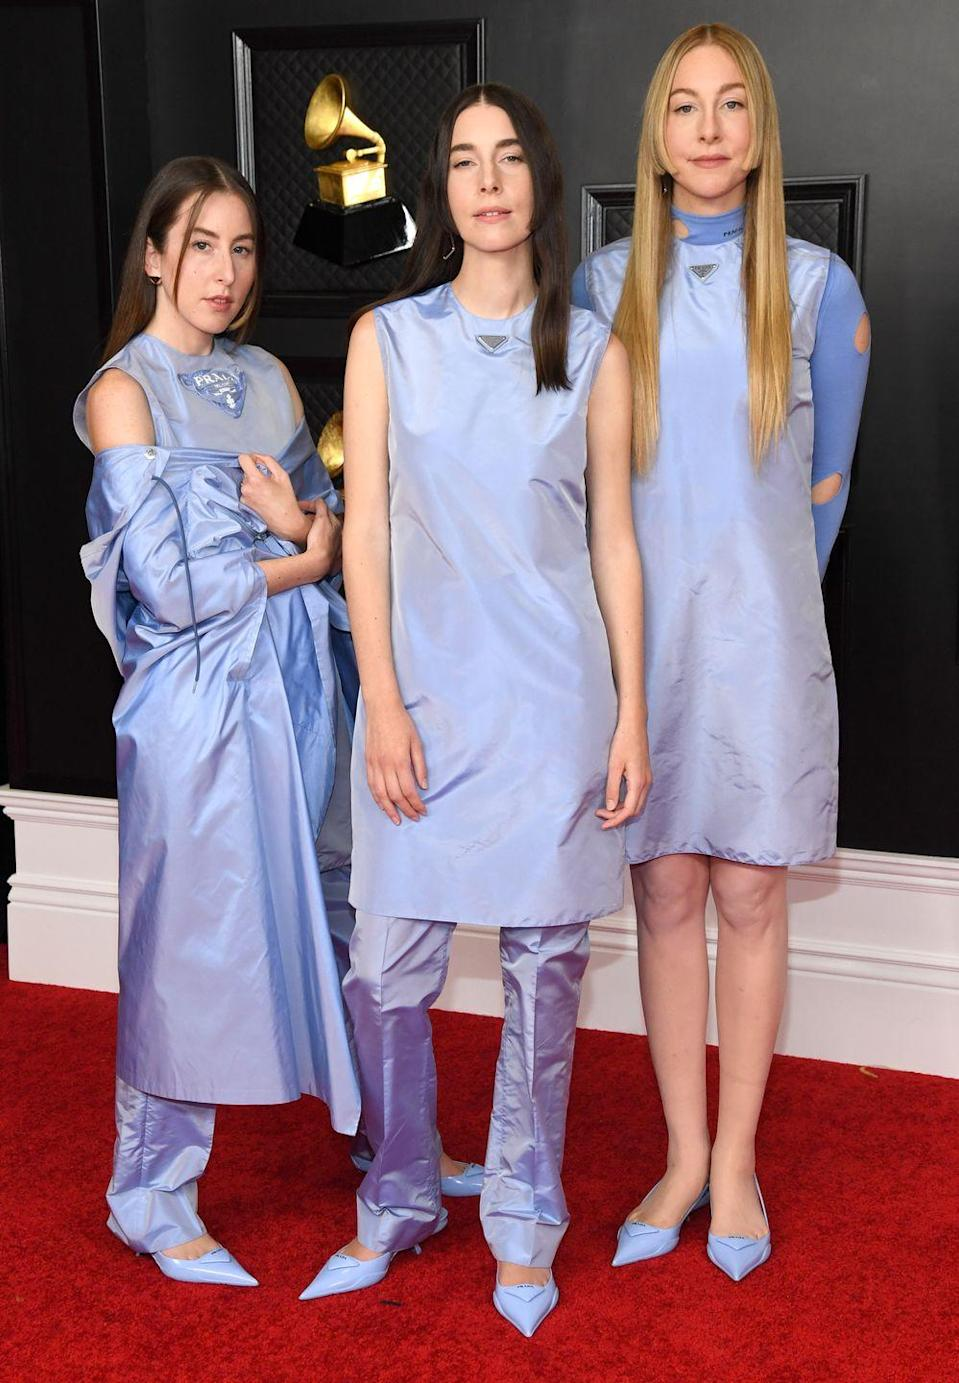 <p>Haim gave a lesson in co-ordinated dressing last night, with all three sisters looking excellent wearing top-to-toe pale blue Prada looks from the Italian label's most recent ready-to-wear collection.</p>